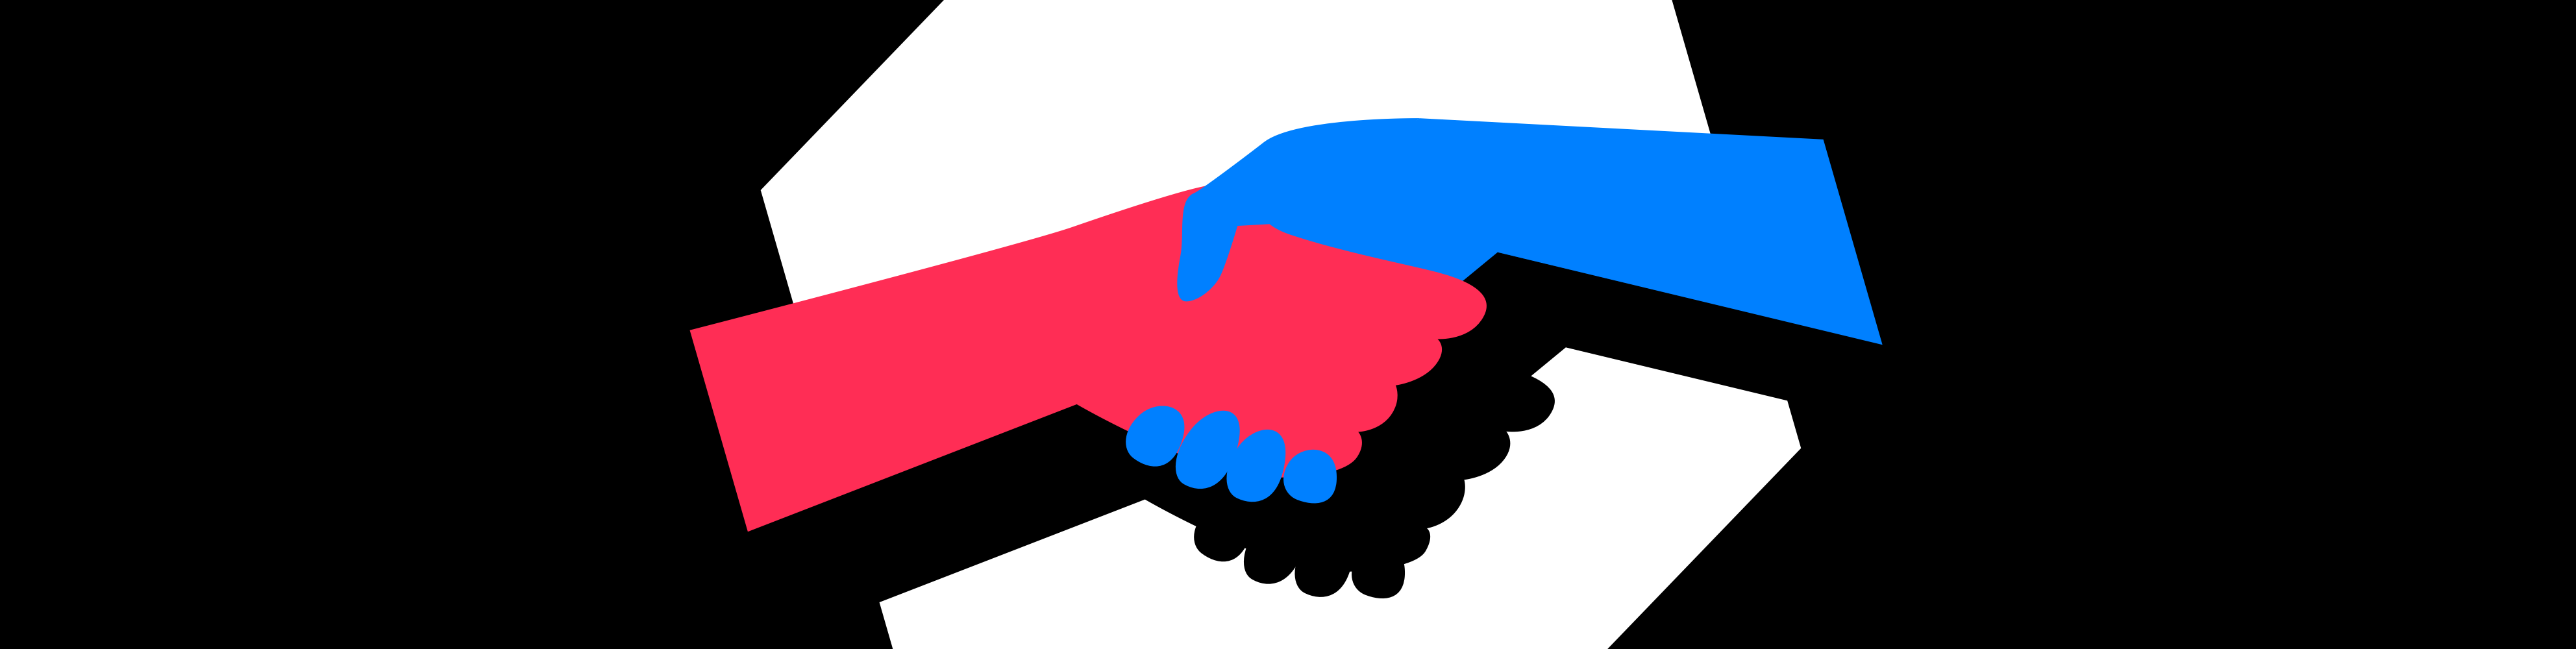 Illustration of a shake of hands